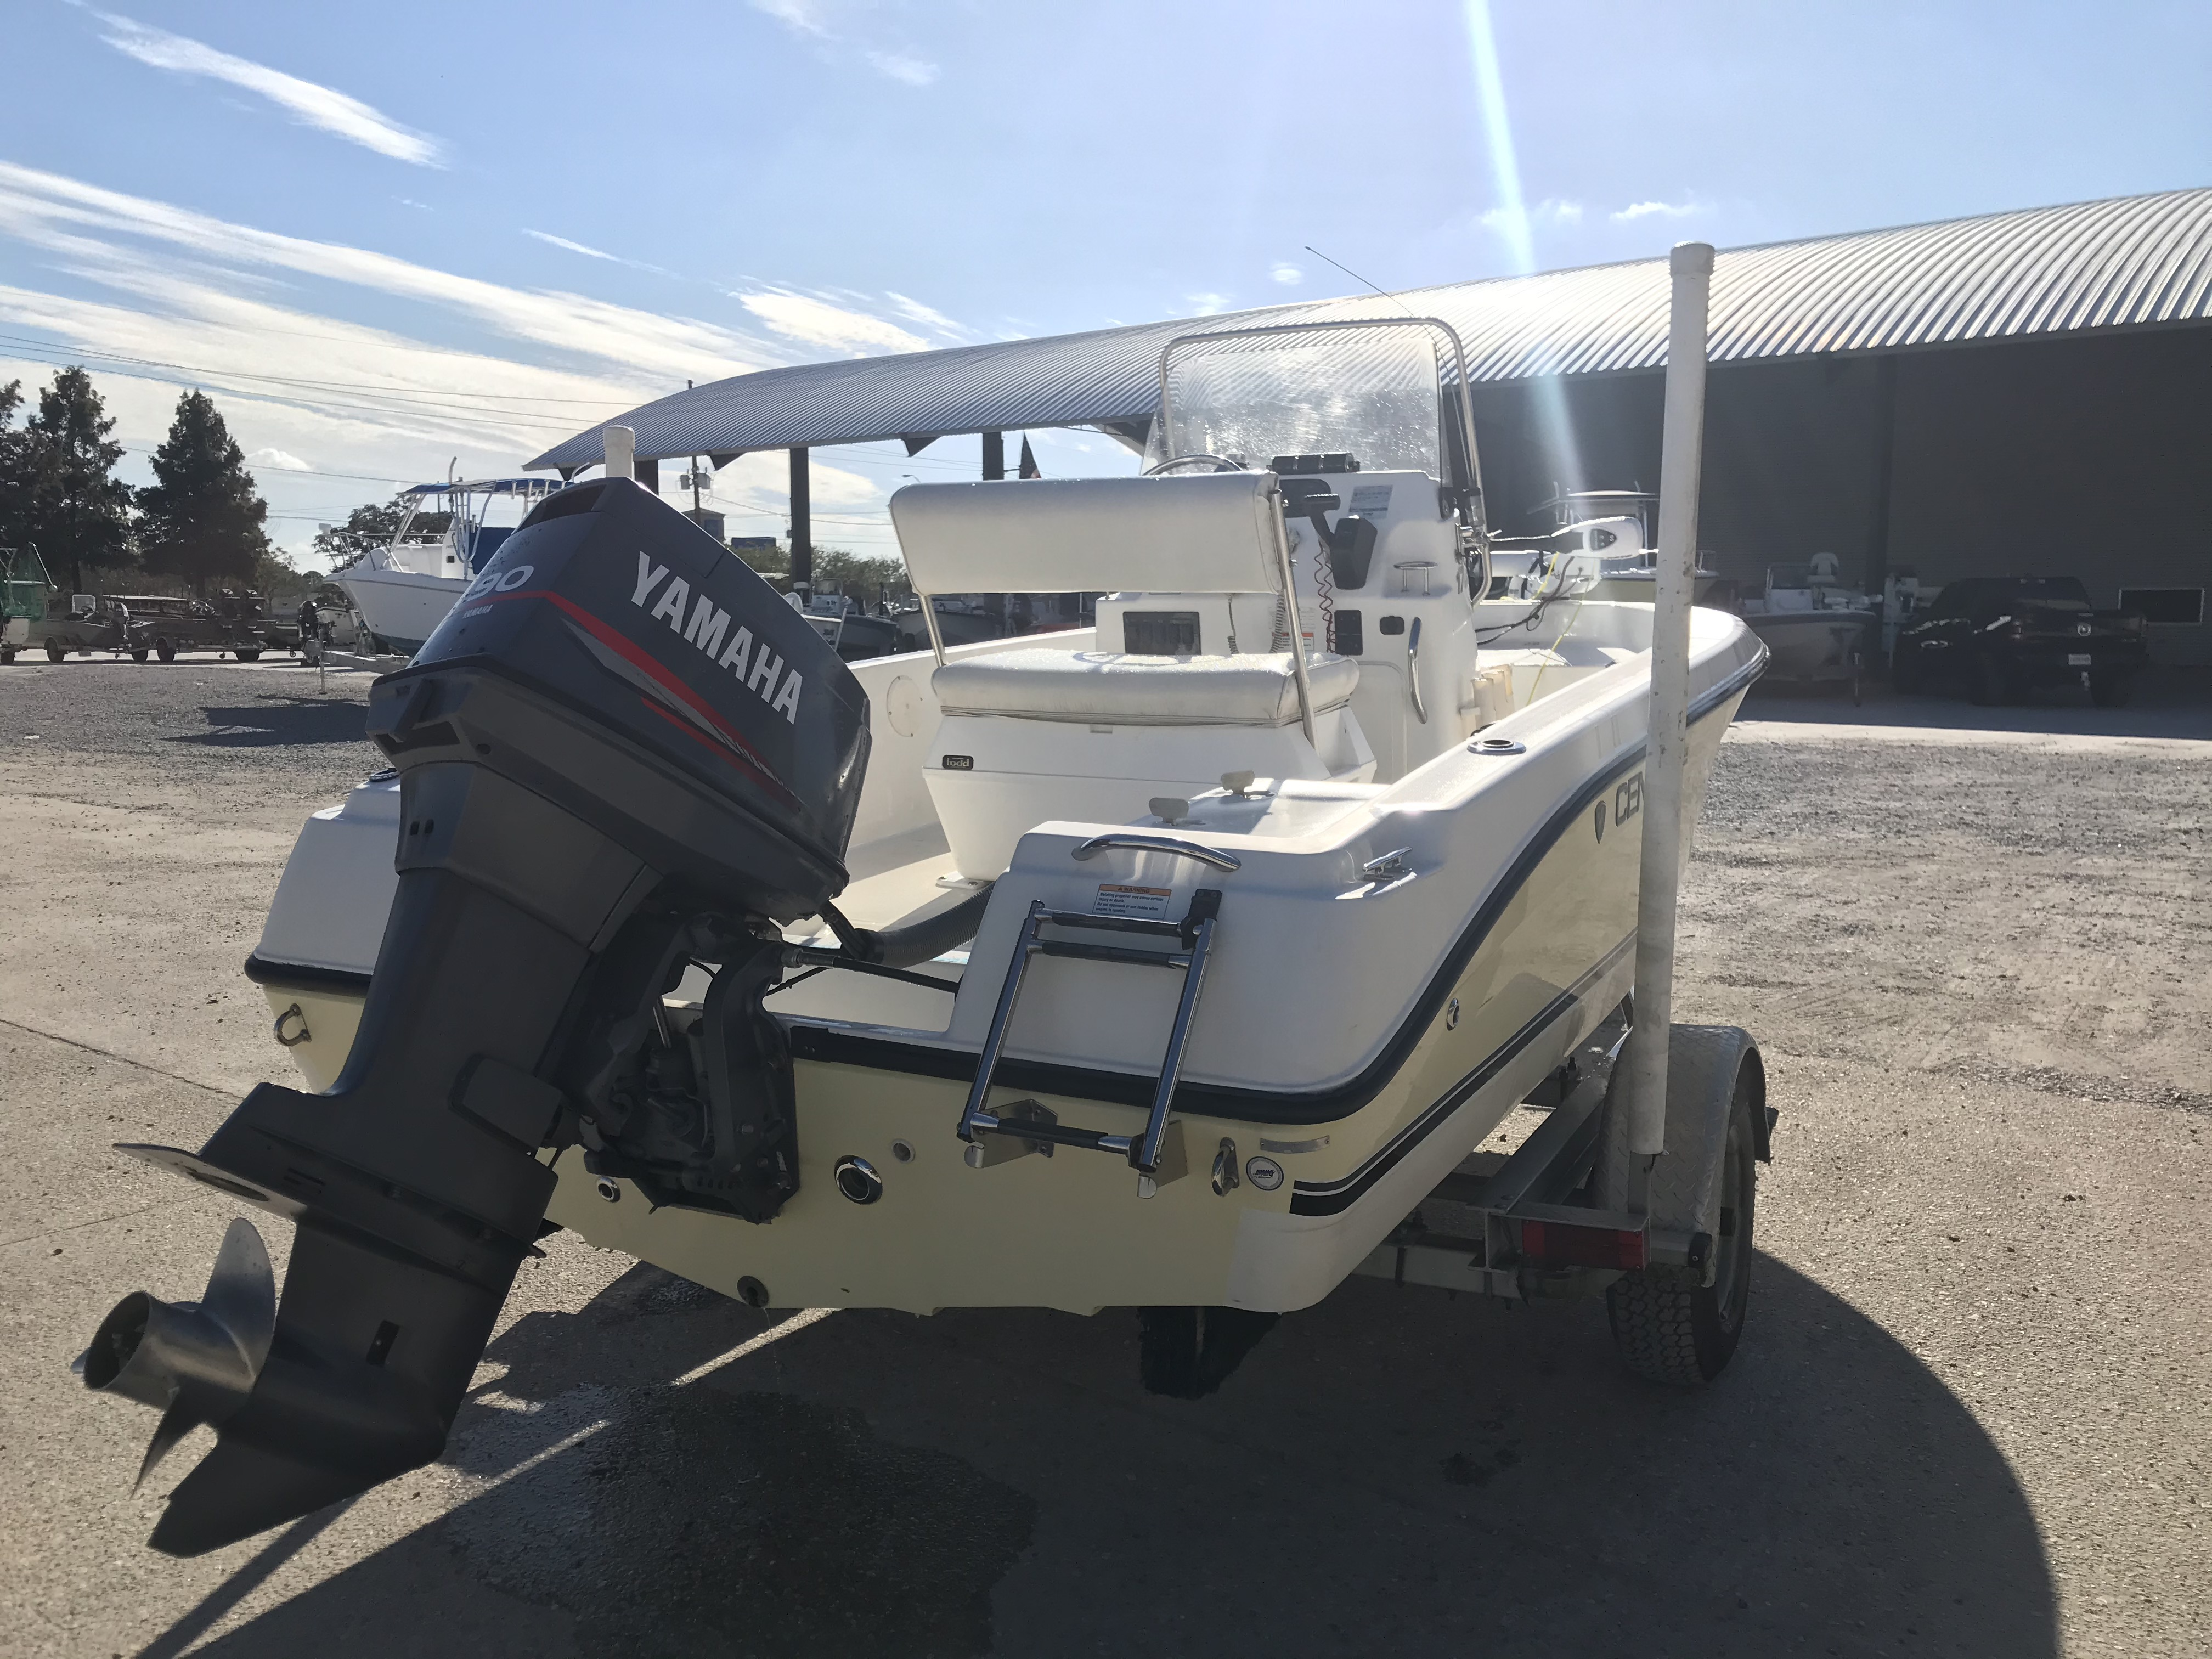 2007 Century boat for sale, model of the boat is 1701 SV & Image # 3 of 8